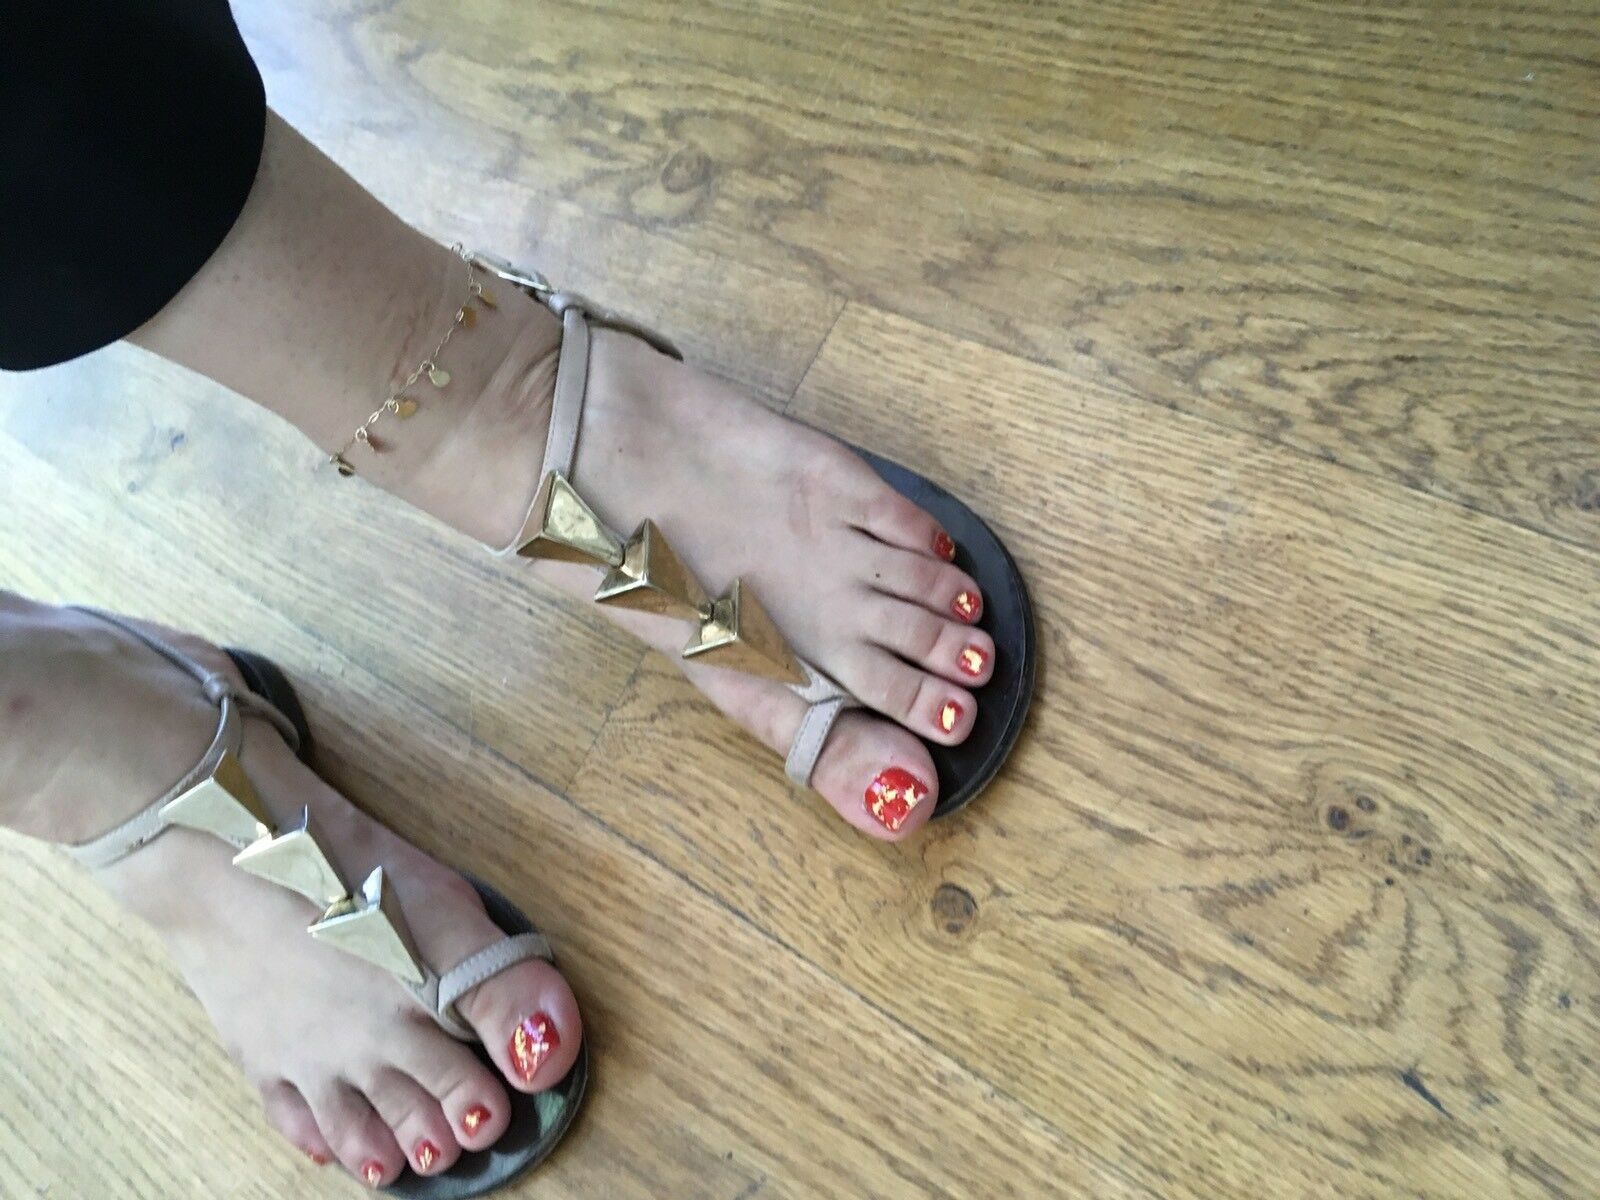 Giuseppe Zanotti sandals with embellishment at 35 vamps shoes flats SZ 35 at UK 2 US 5 122252